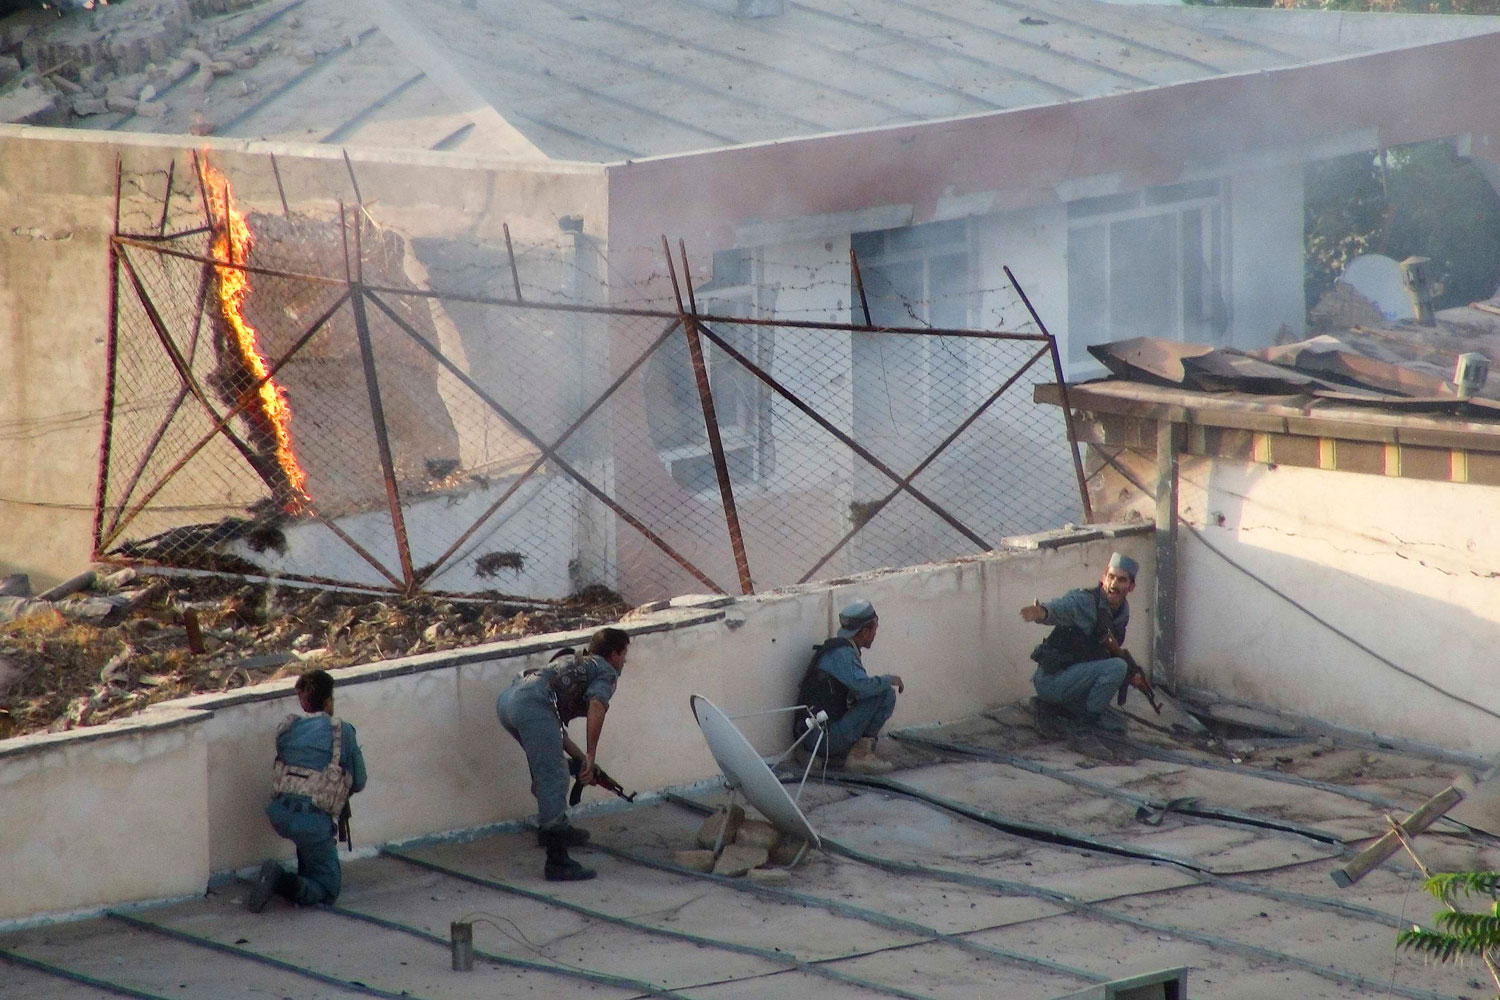 August 2, 2011. Police fight suicide attackers who took over a guesthouse in Kunduz province. Three suicide bombers raided a guesthouse frequented by foreigners in the northern Afghan province of Kunduz, killing four Afghan security guards.